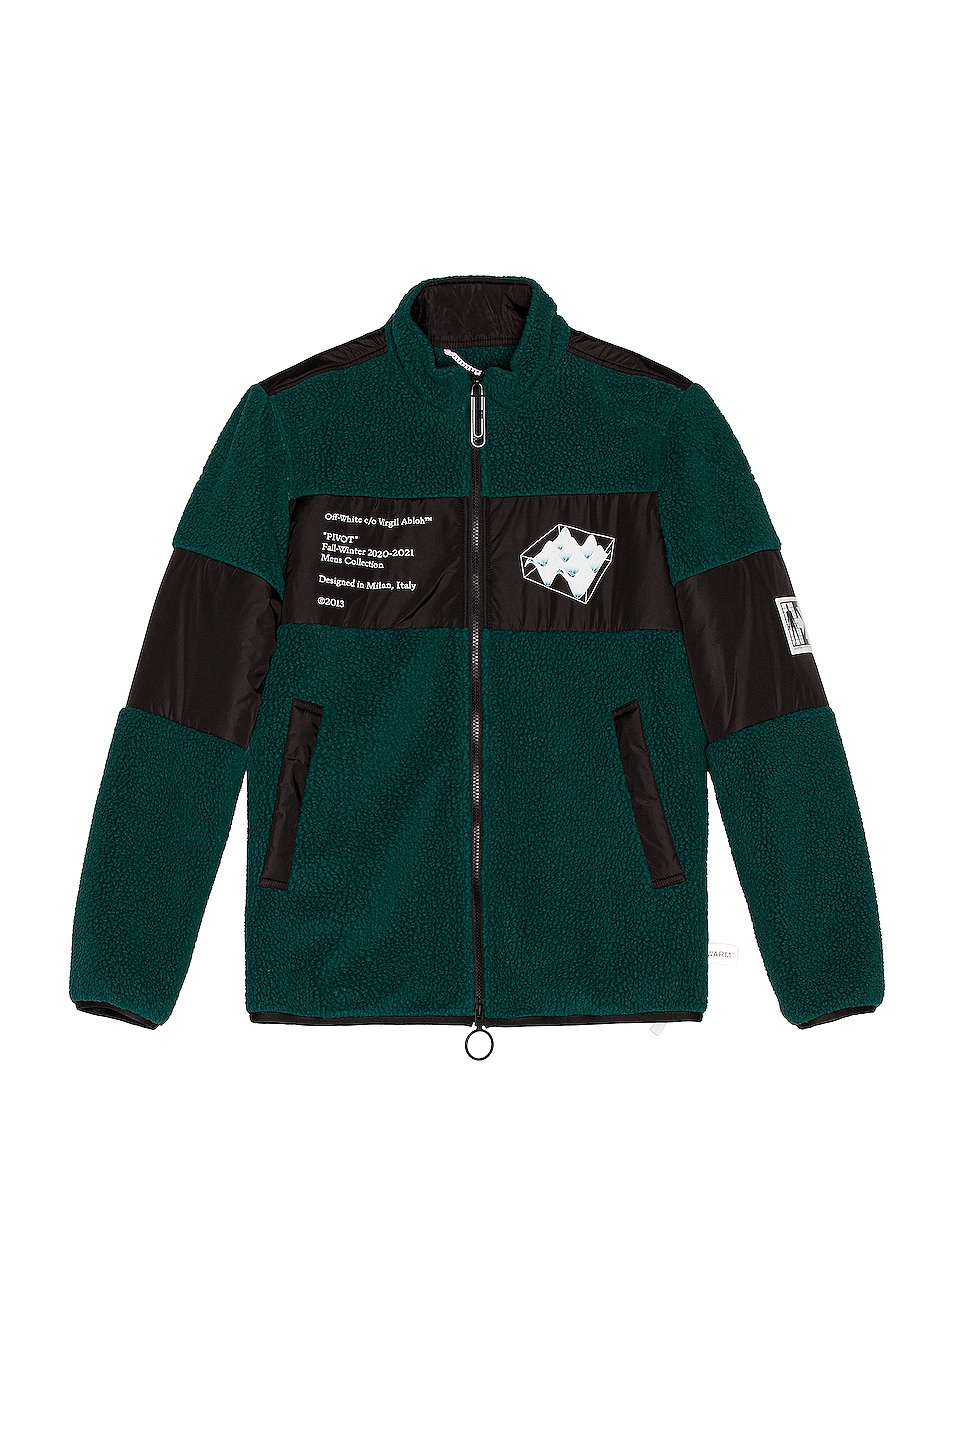 Image 1 of OFF-WHITE Polar Fleece Jacket in Dark Green & White